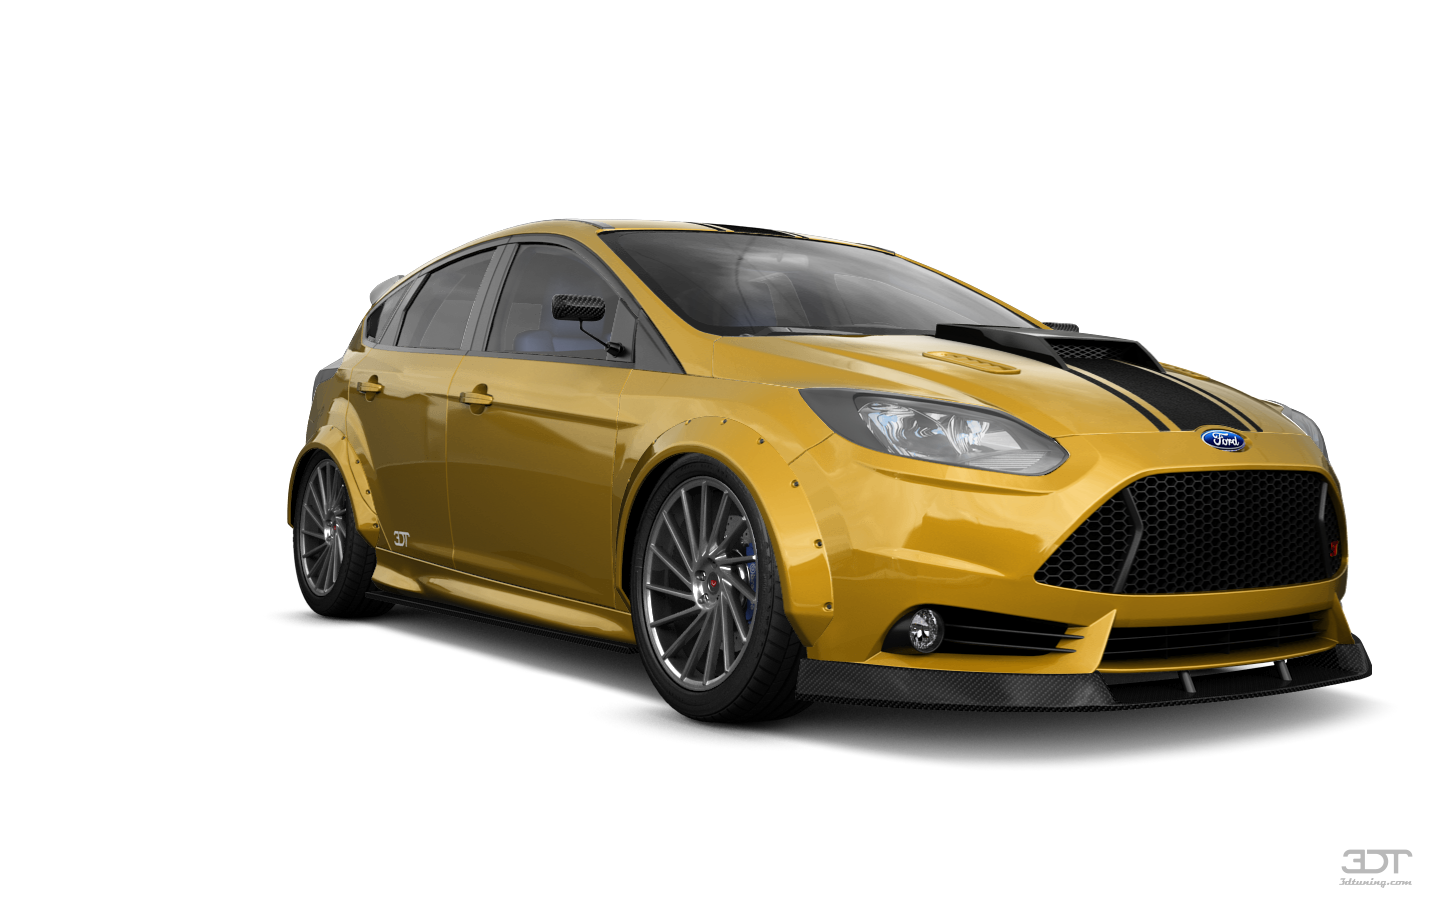 Ford Focus 5 Door Hatchback 2011 tuning